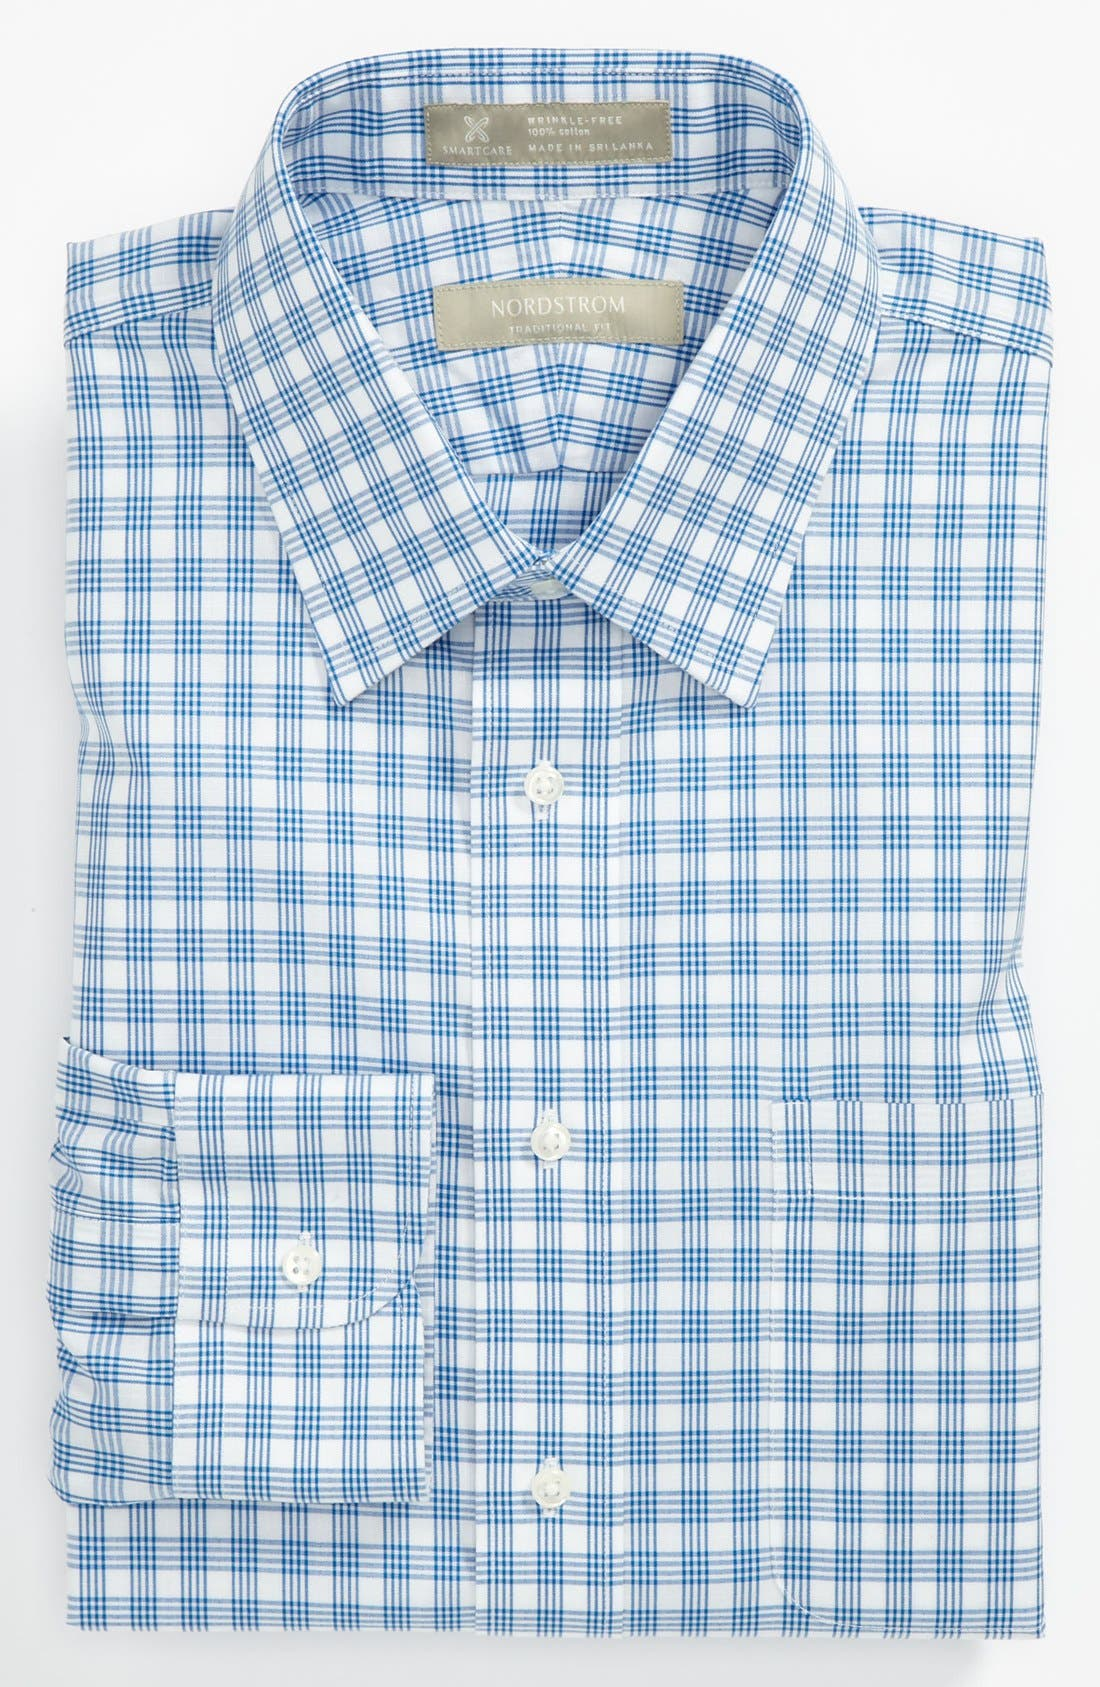 Main Image - Nordstrom Smartcare™ Traditional Fit Non-Iron Dress Shirt